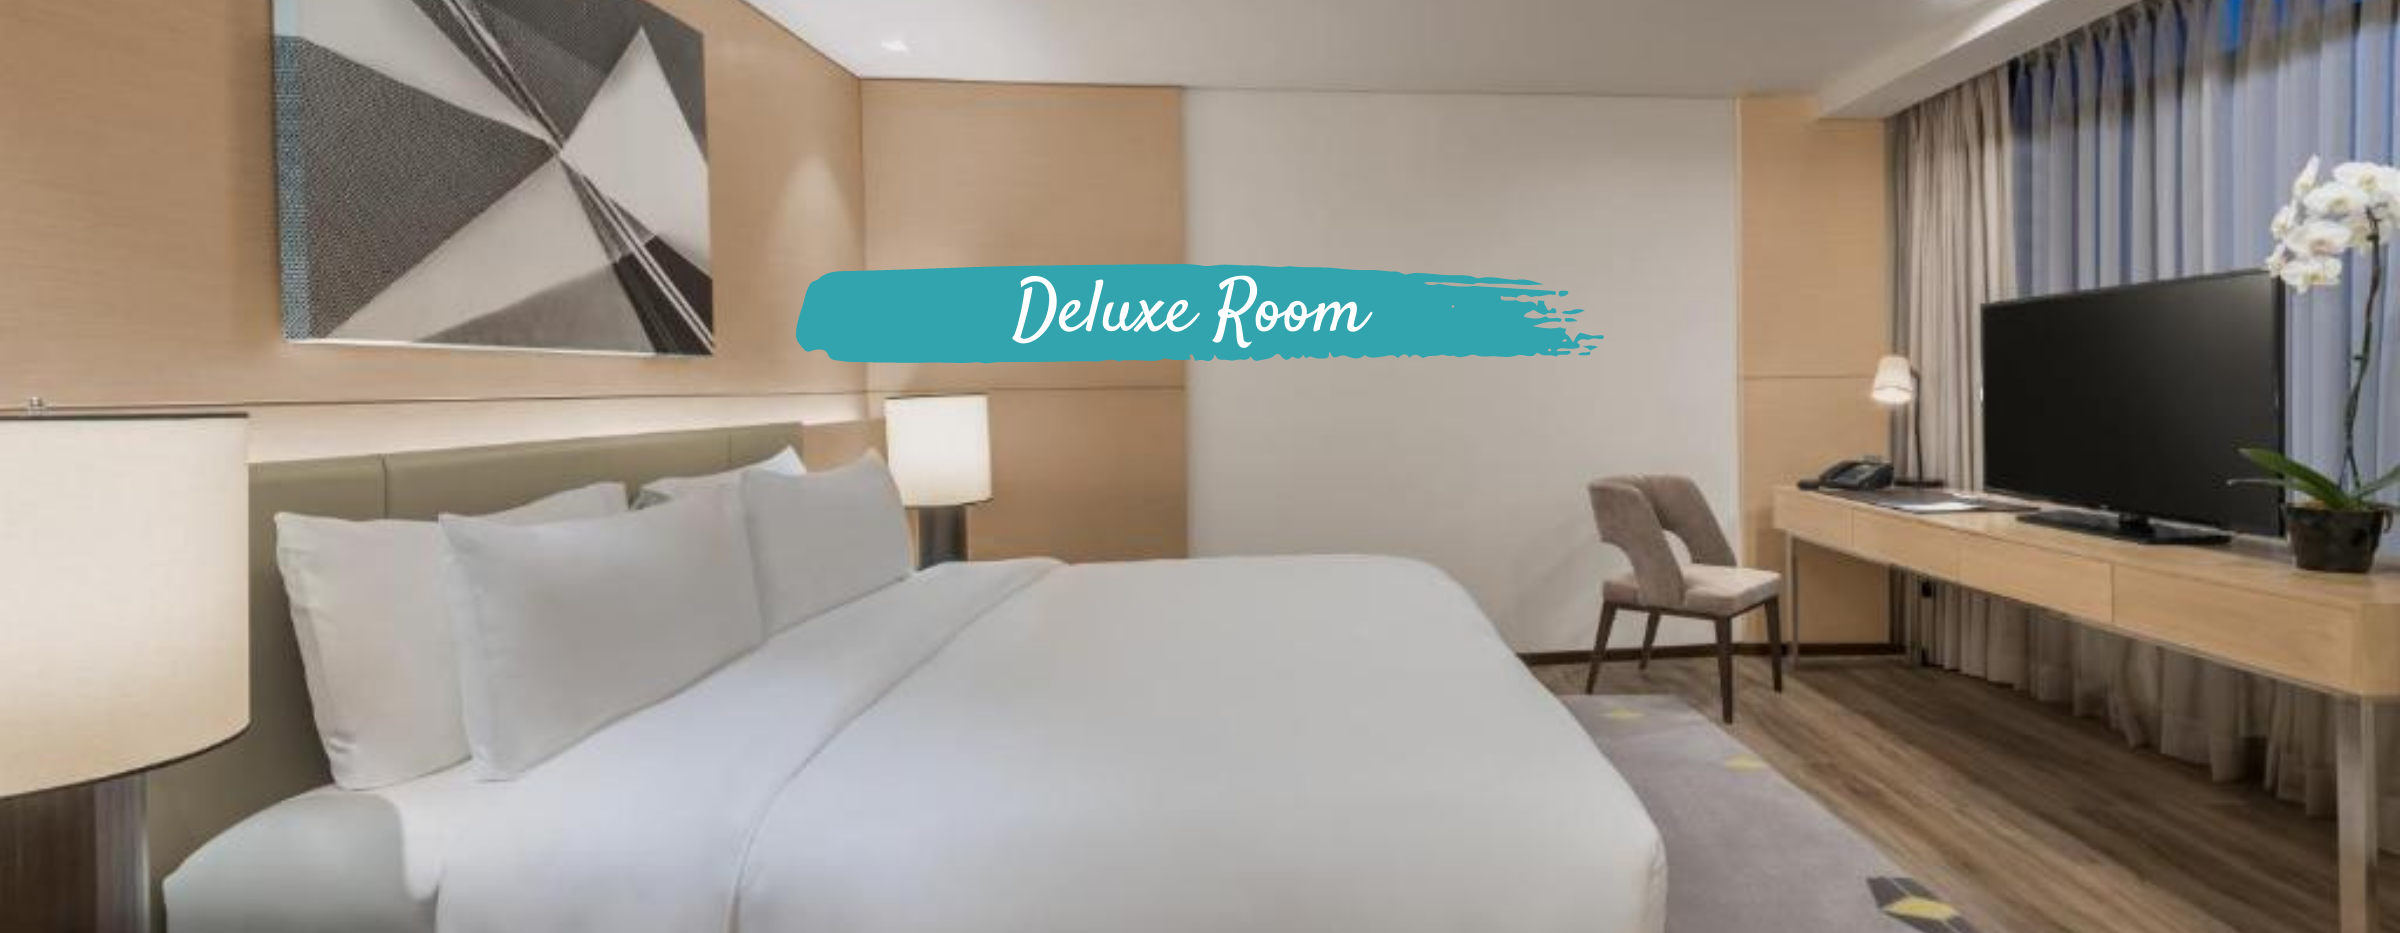 Seda Vertis North Hotel Deluxe Room   SFO to MNL Philippine Airlines + Hotel Quarantine Package